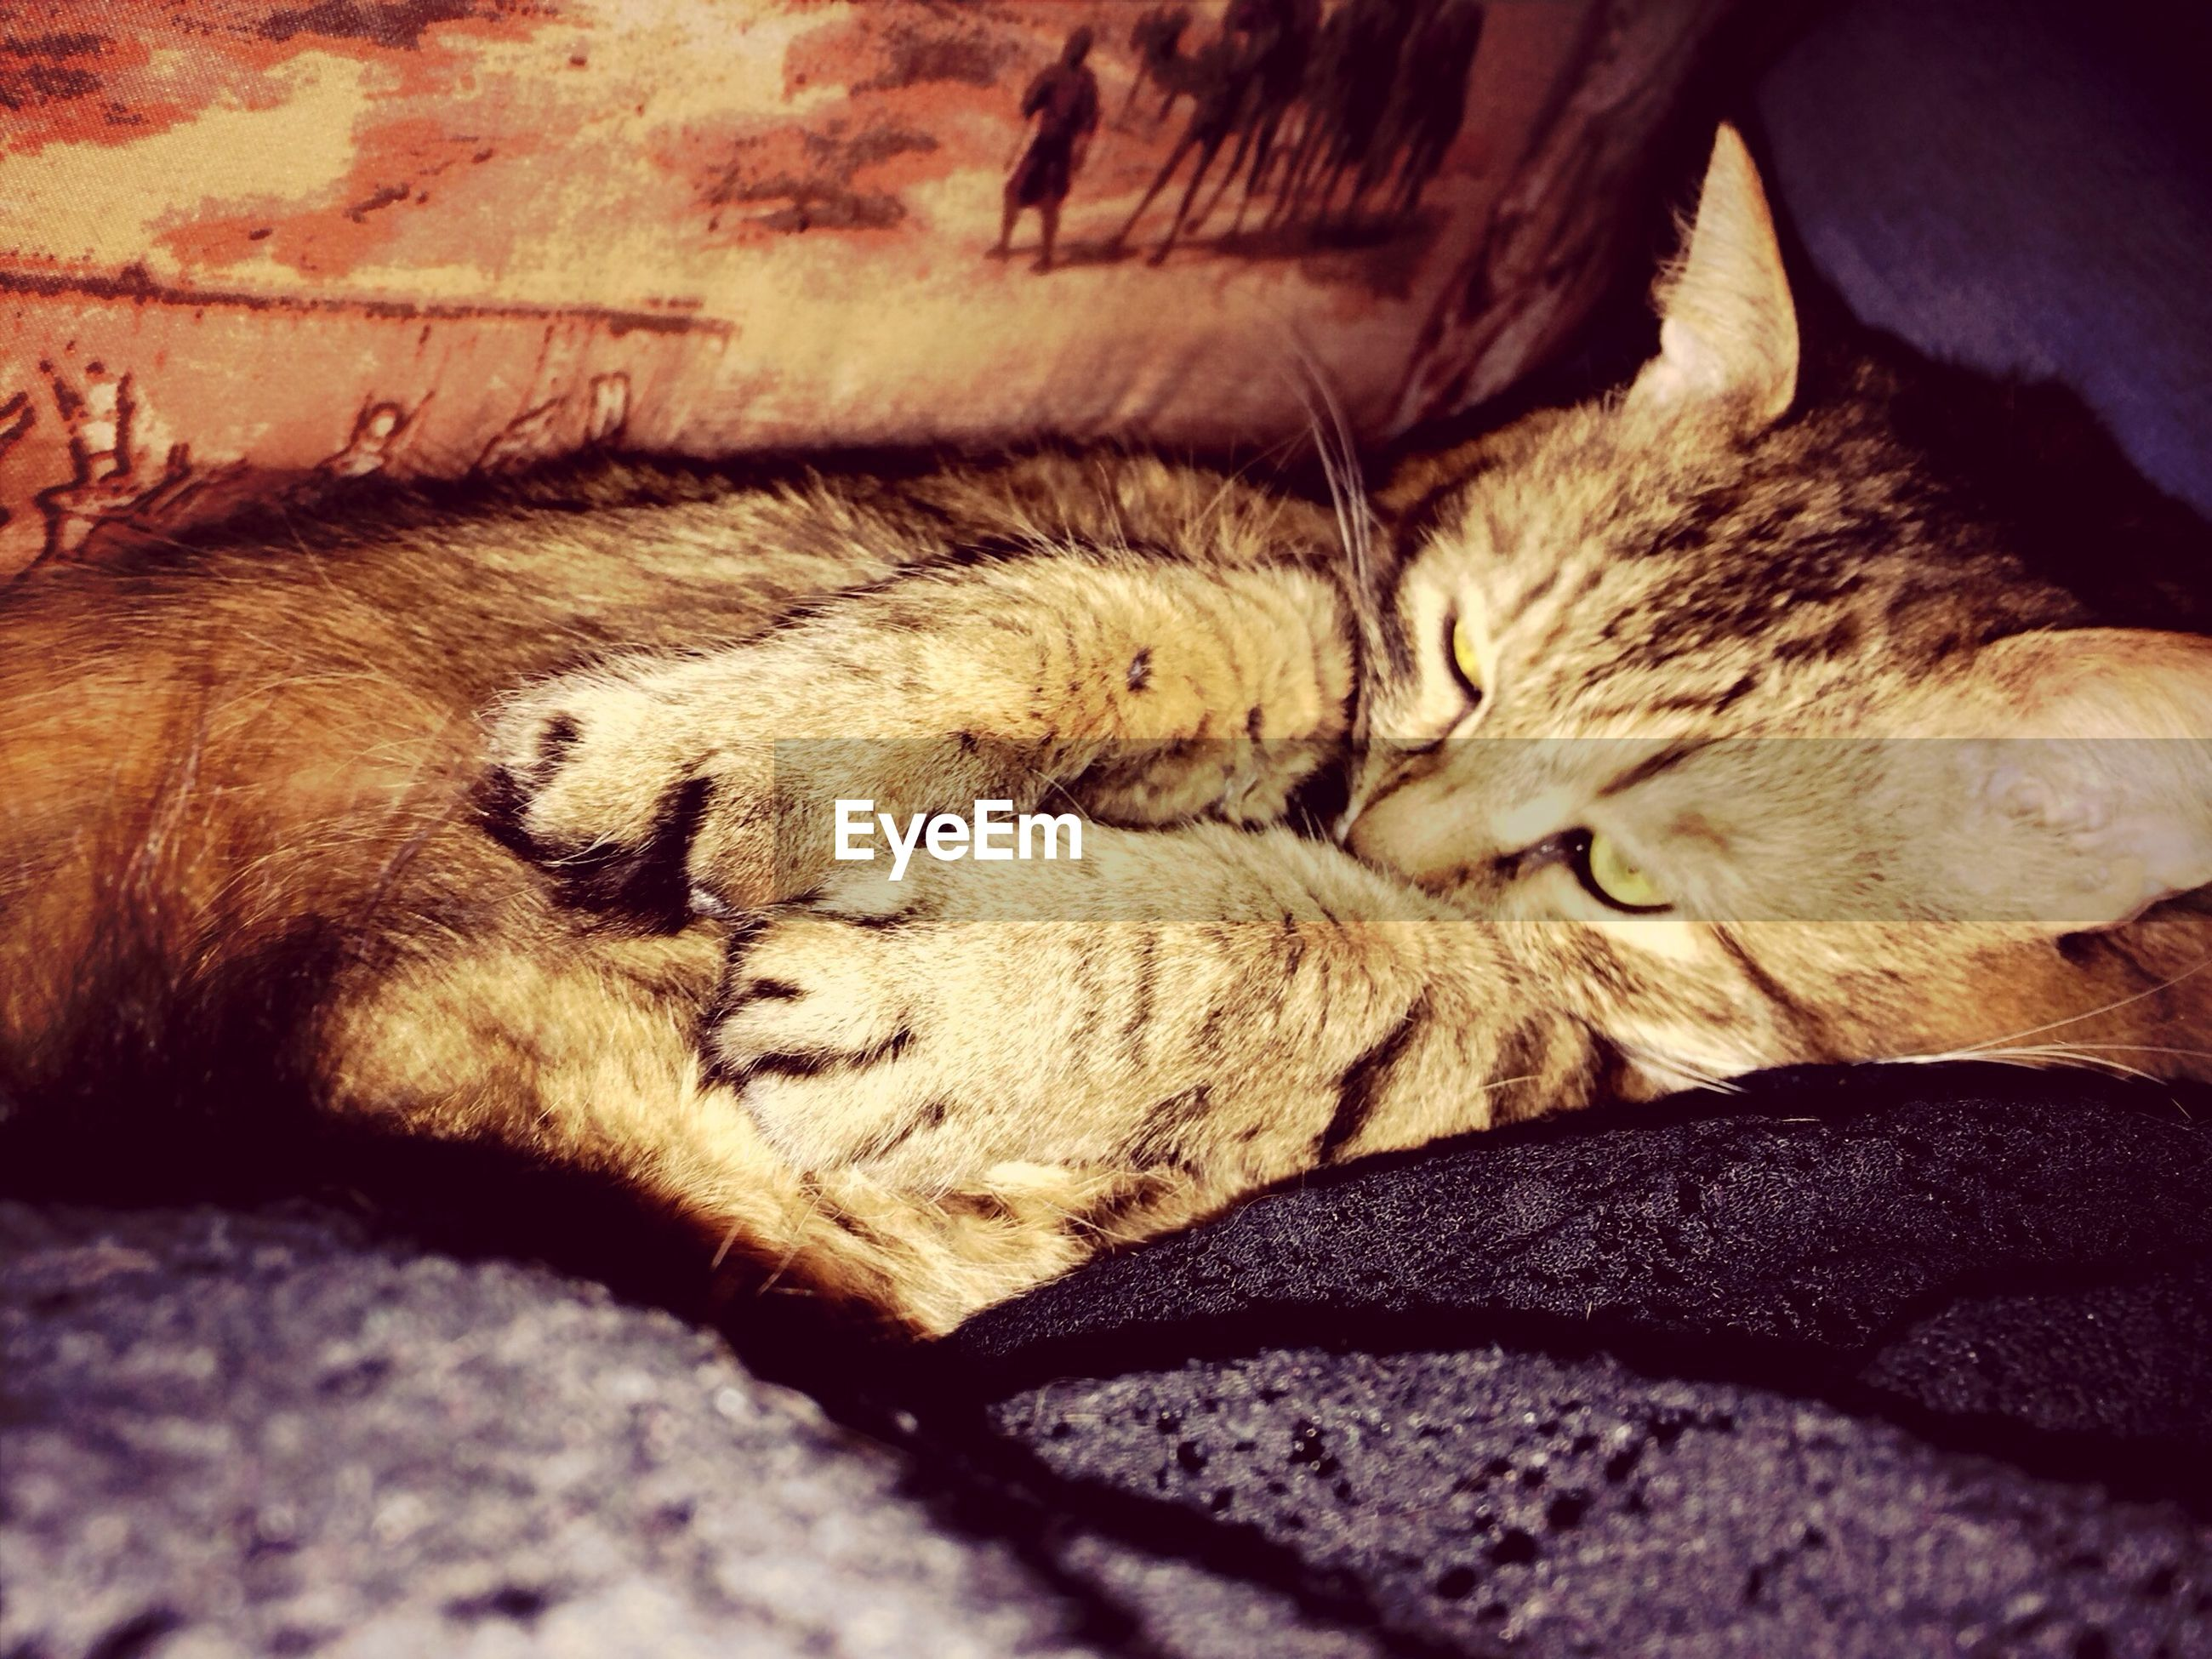 sleeping, animal themes, domestic animals, pets, mammal, one animal, relaxation, resting, lying down, indoors, domestic cat, eyes closed, cat, dog, feline, bed, close-up, relaxing, selective focus, comfortable